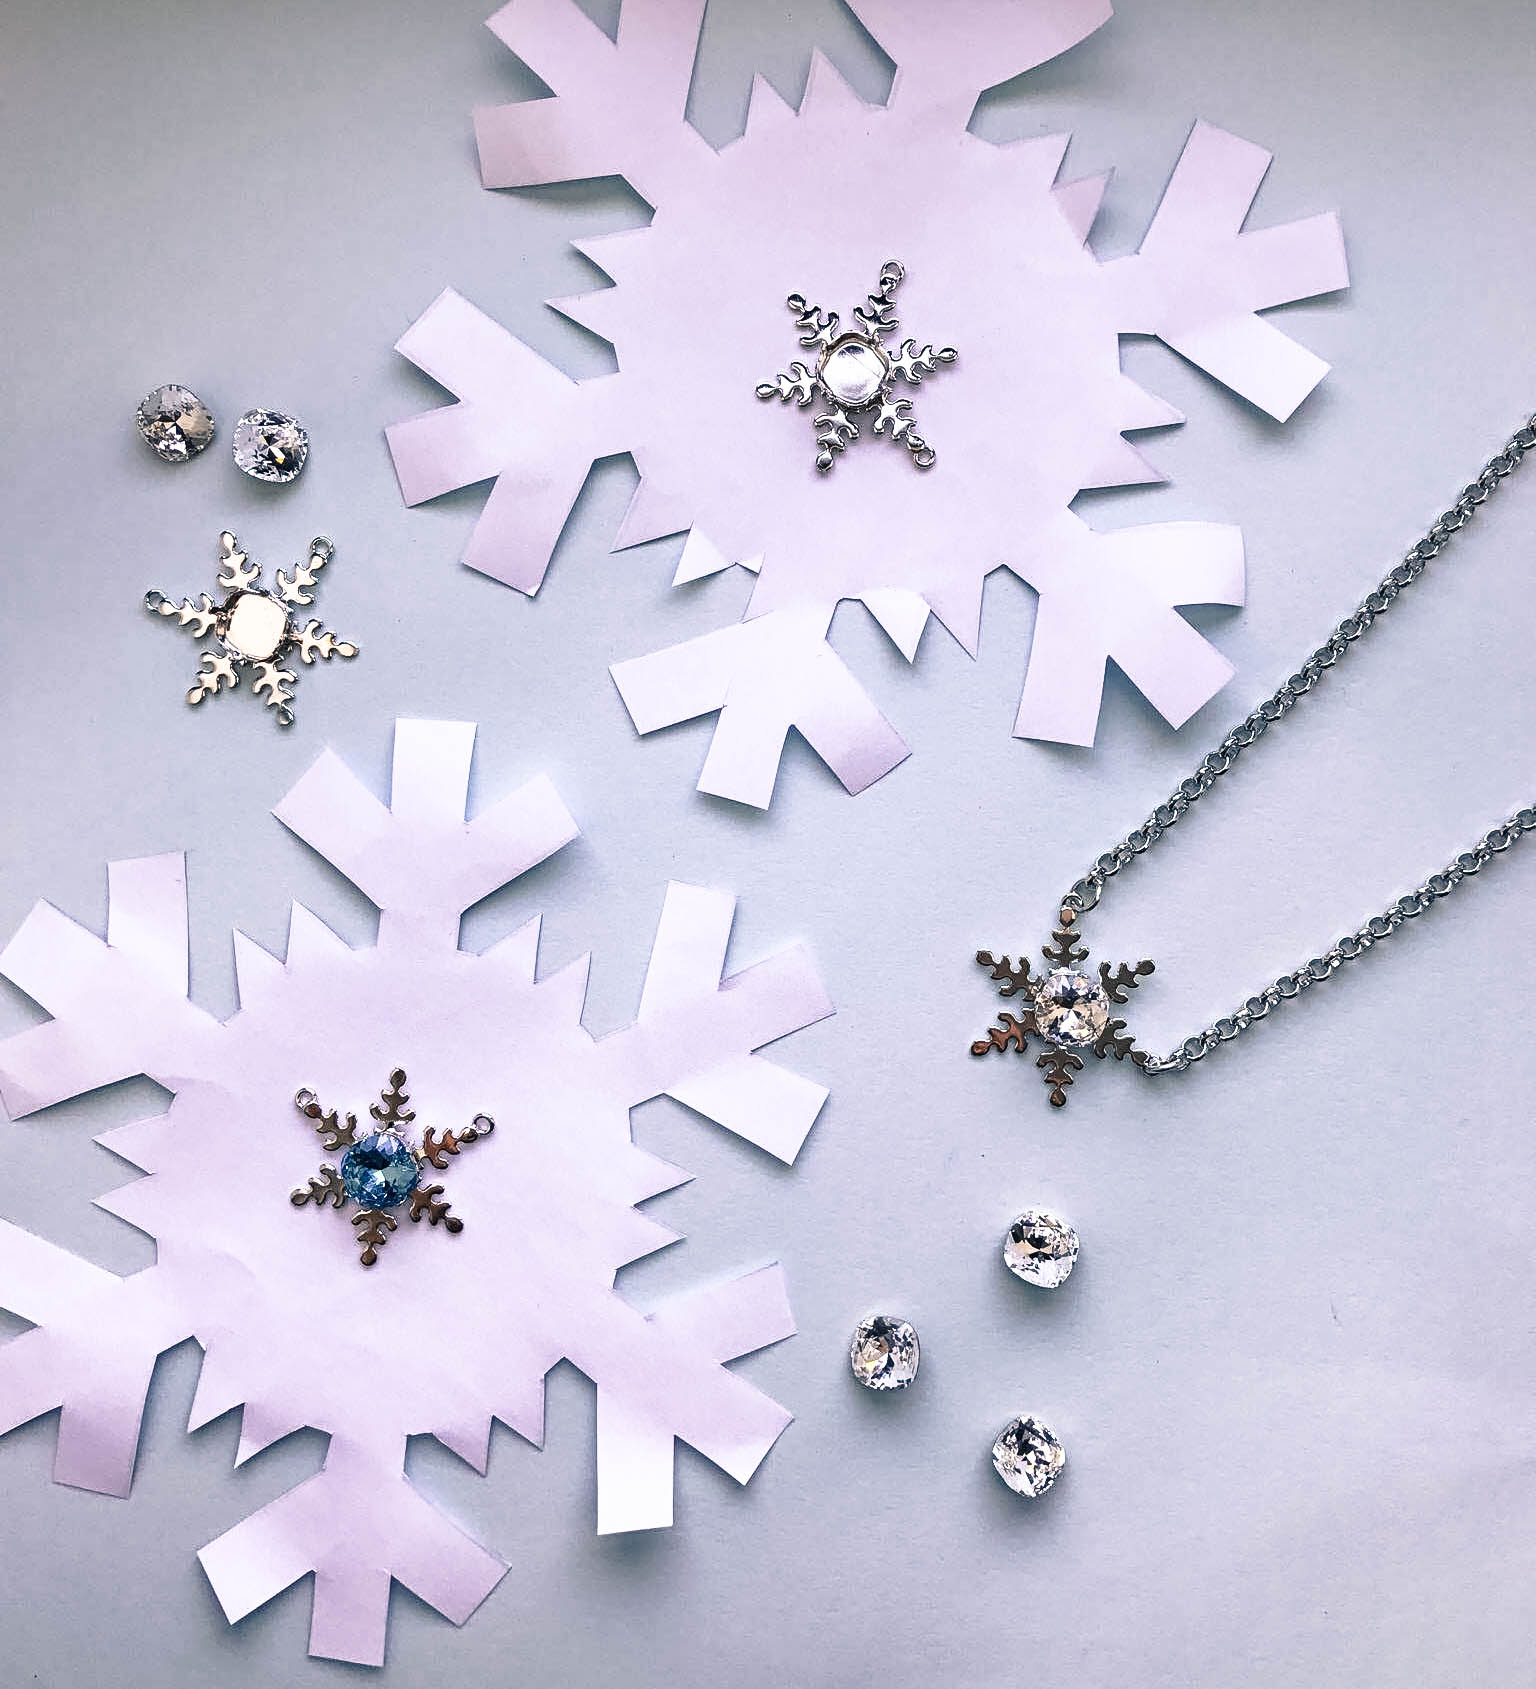 10mm Square Cushion Cut Single Pendant Snowflake Necklace